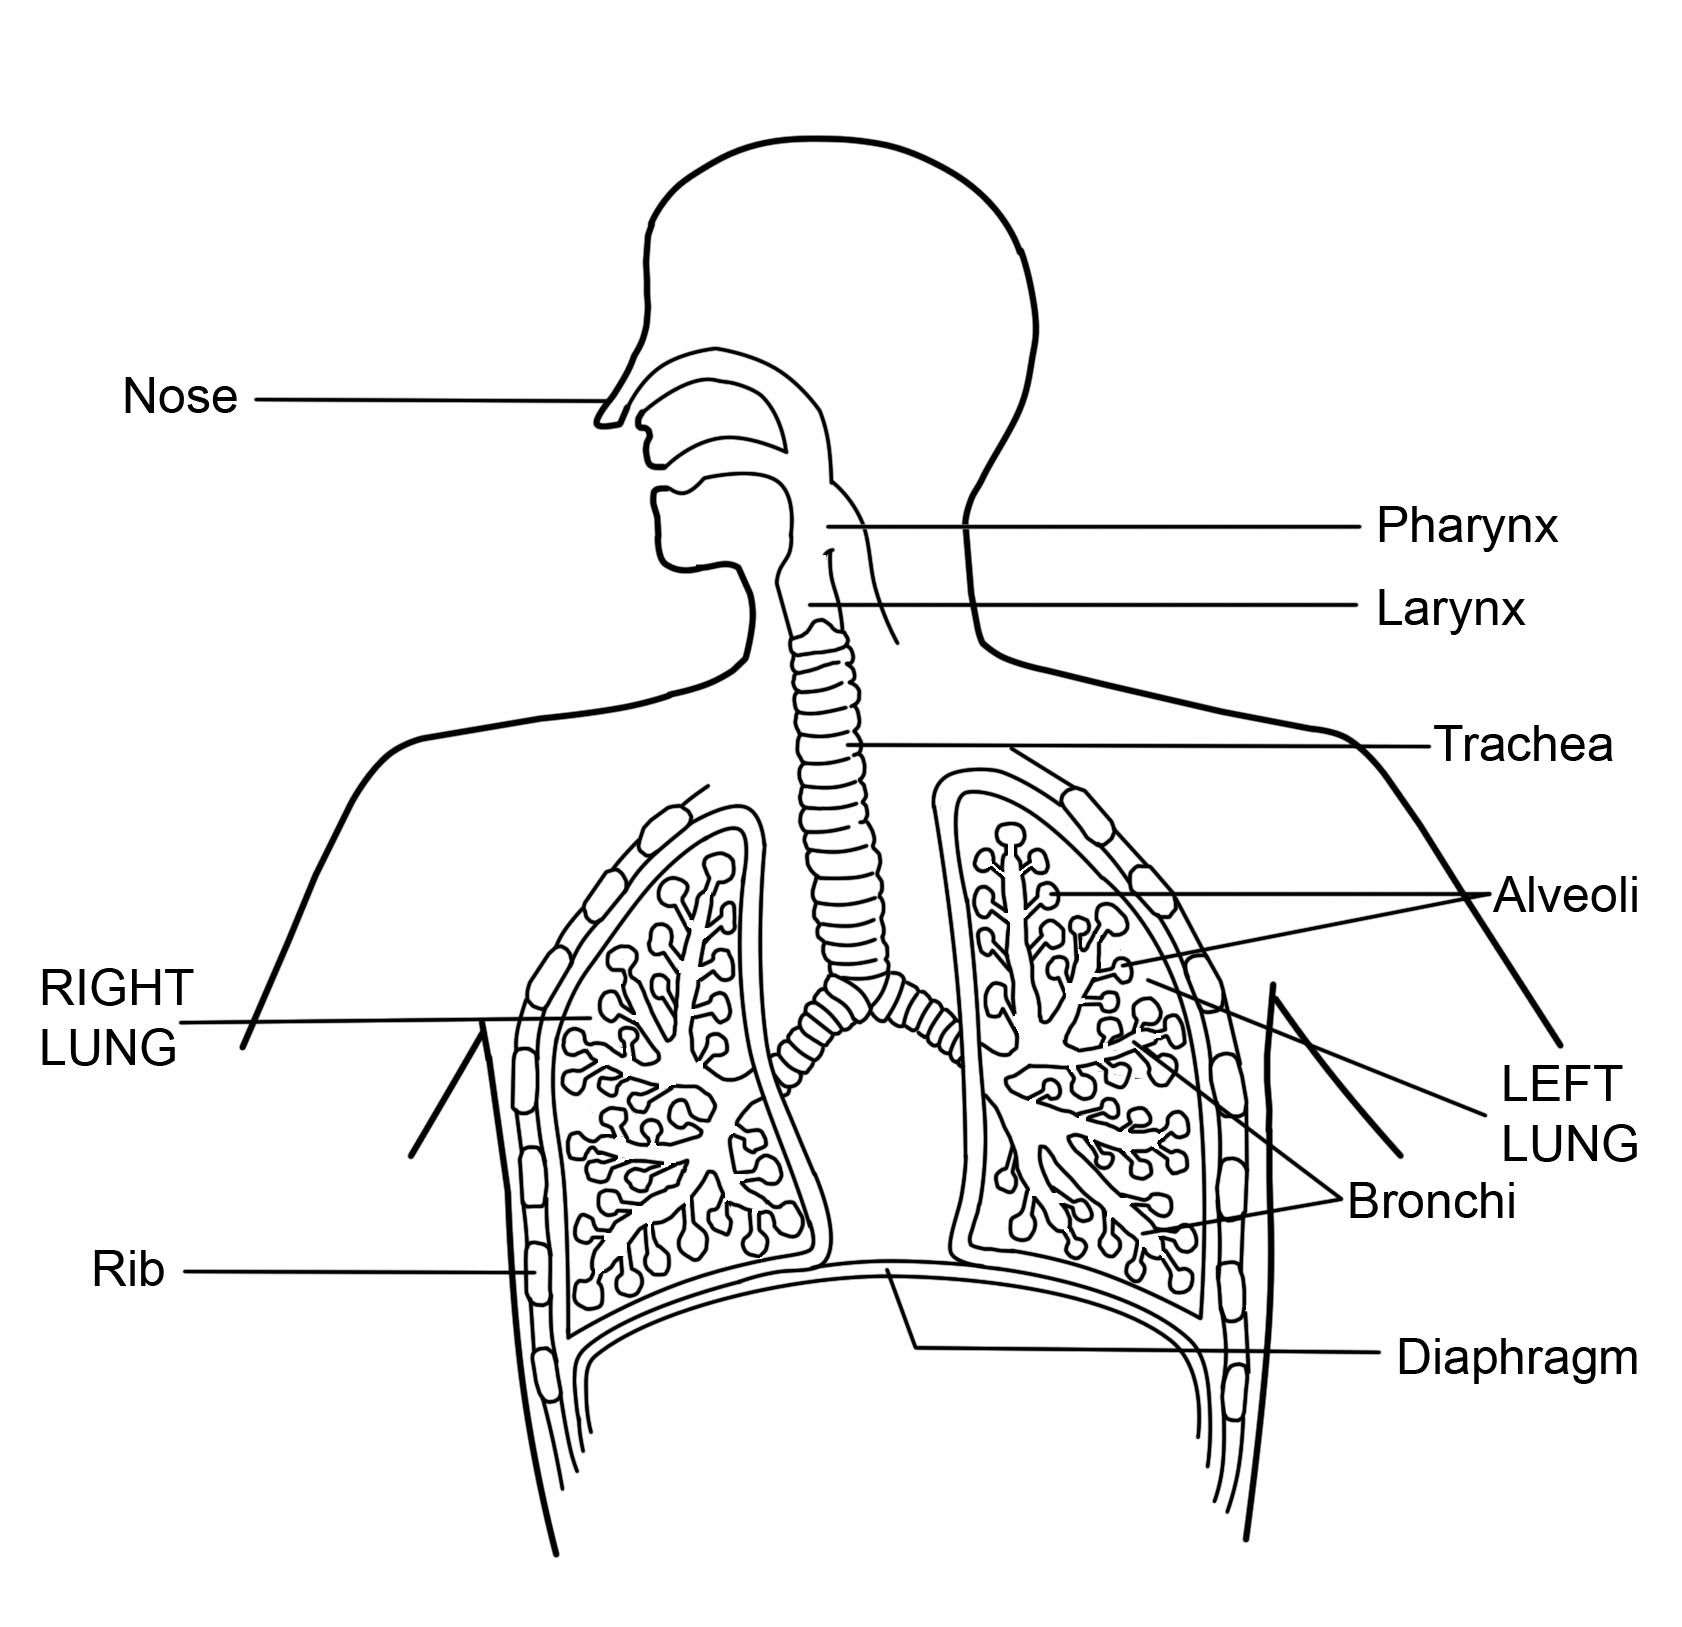 medium resolution of respiratory diagram with labels